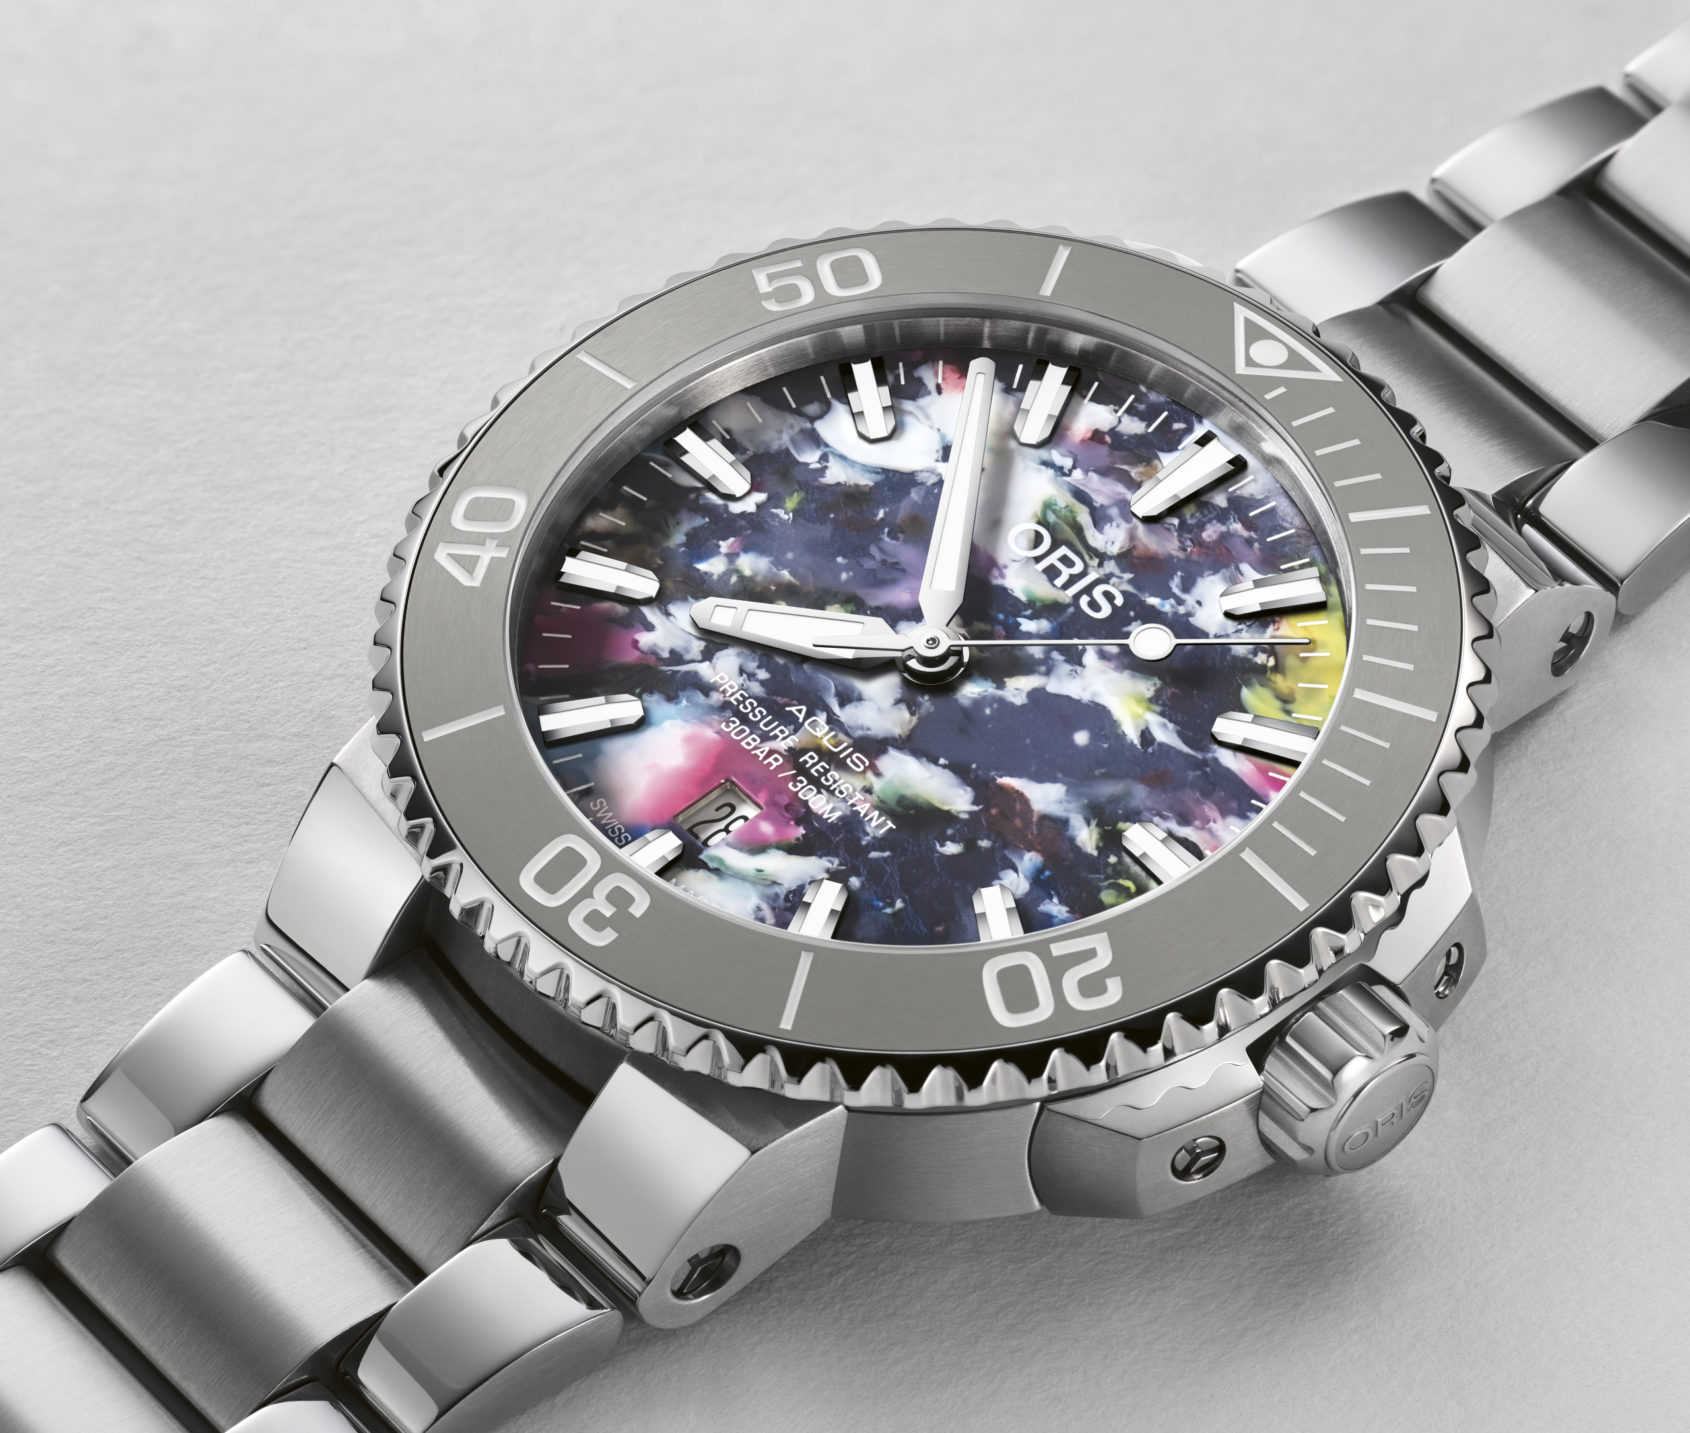 INTRODUCING: The Oris Aquis Date Upcycle made from recycled plastic